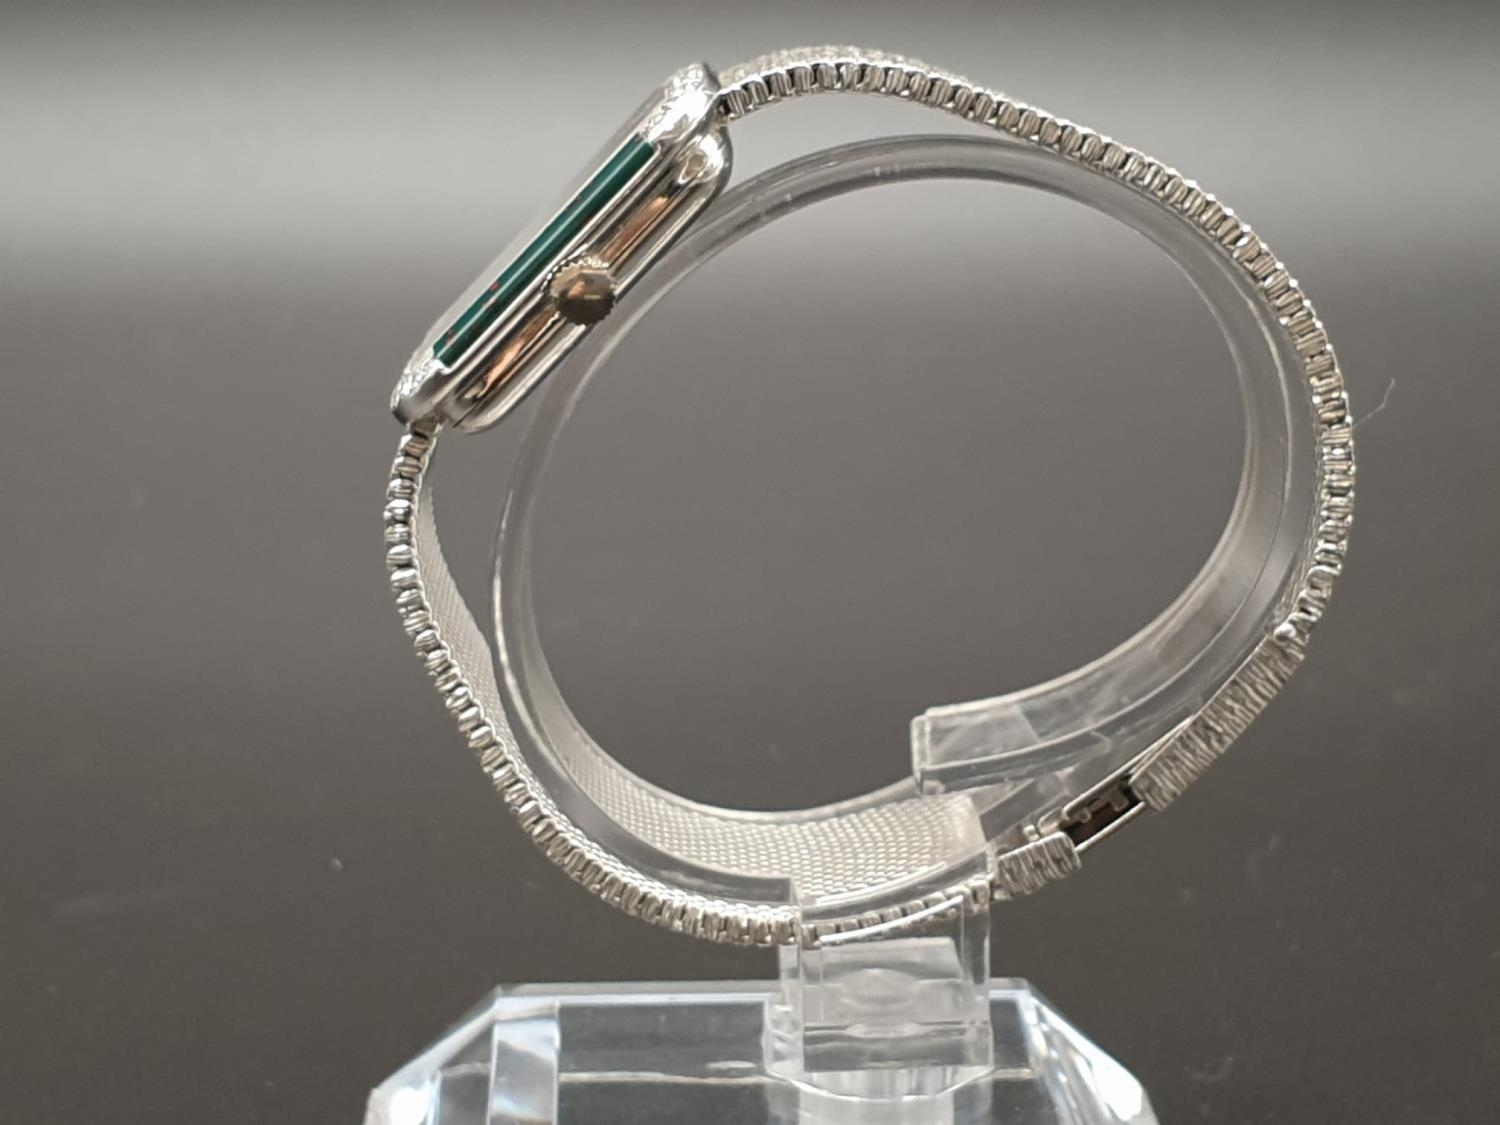 AN 18K WHITE GOLD DRESS WATCH WITH HALF DIAMOND BEZEL AND SOLID GOLD STRAP. 26MM - Image 3 of 12